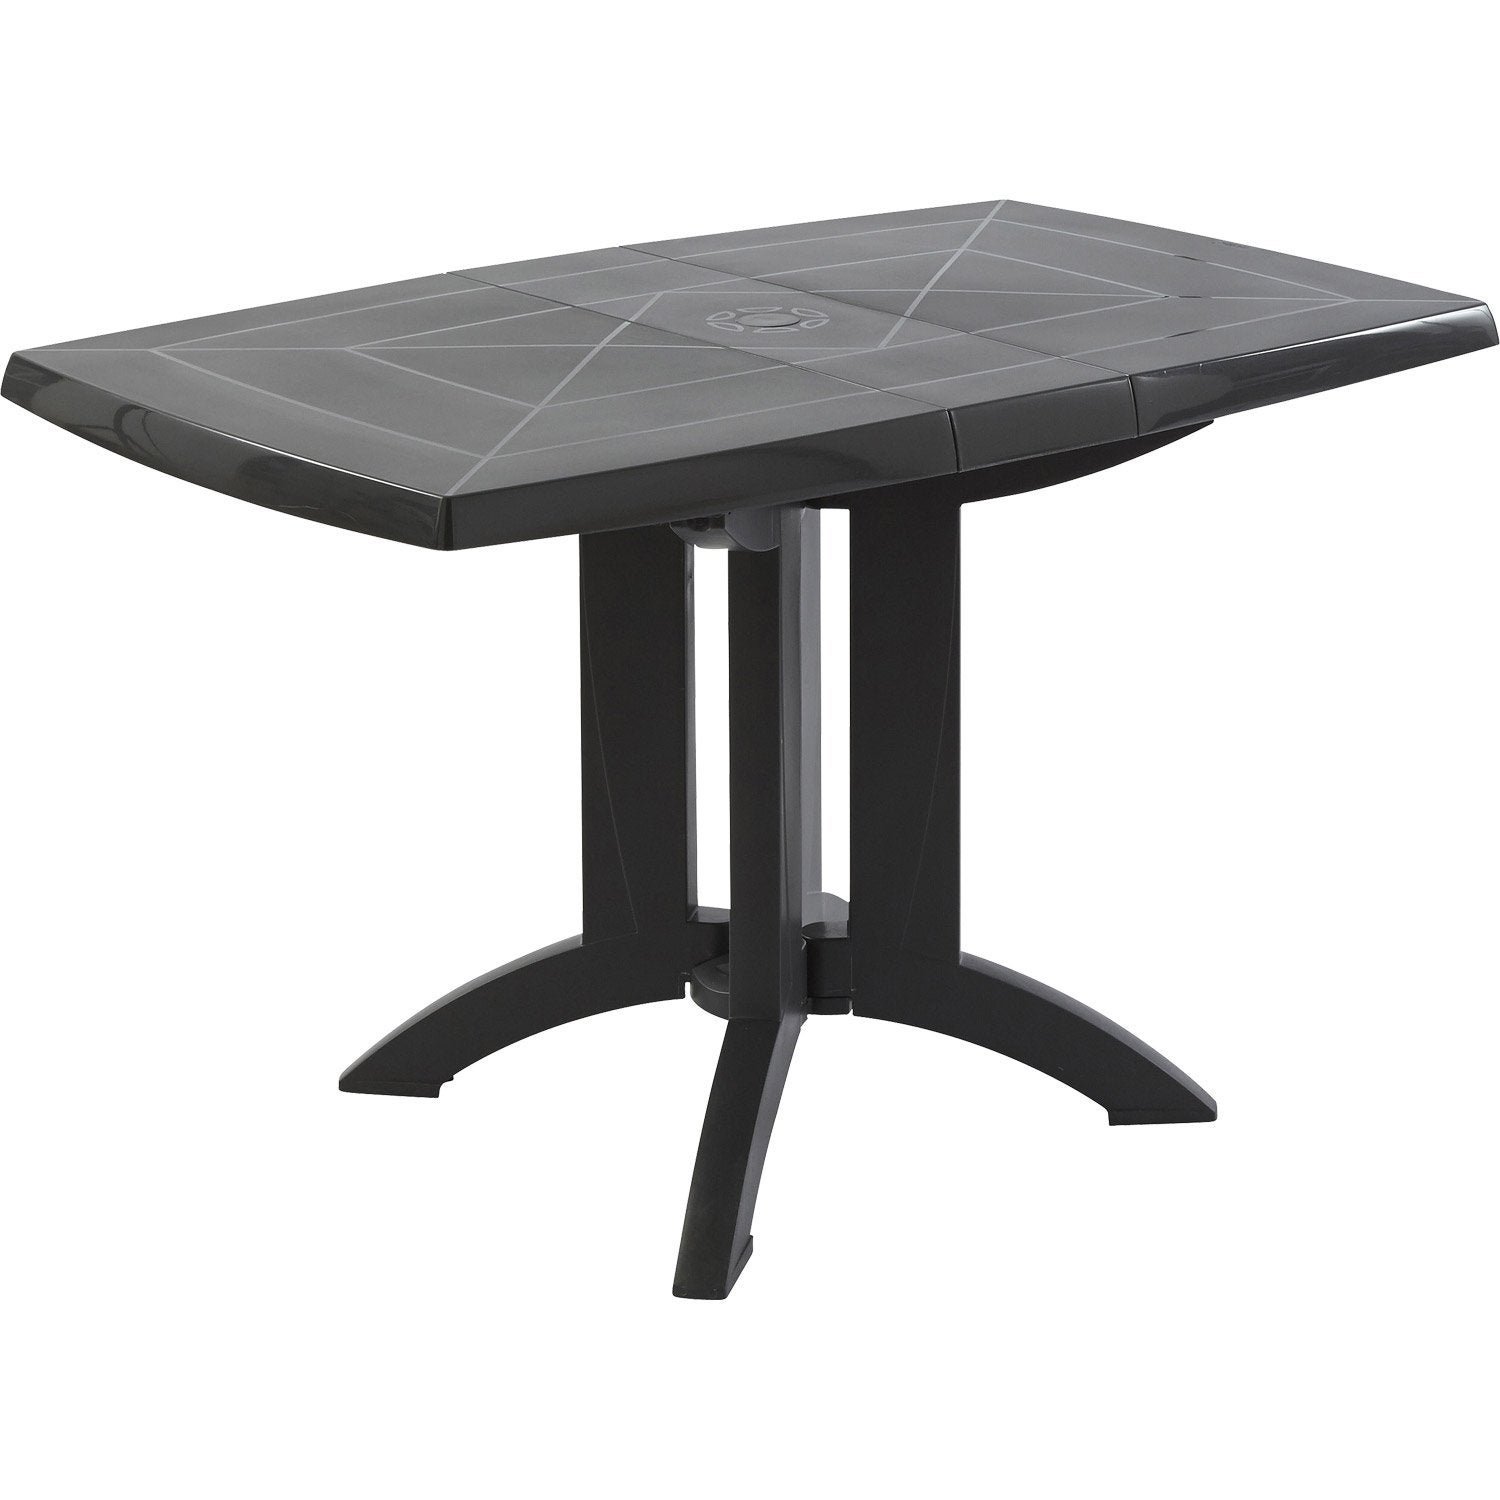 Table de jardin grosfillex v ga rectangulaire anthracite 4 personnes leroy merlin - Leroy merlin table pliante ...